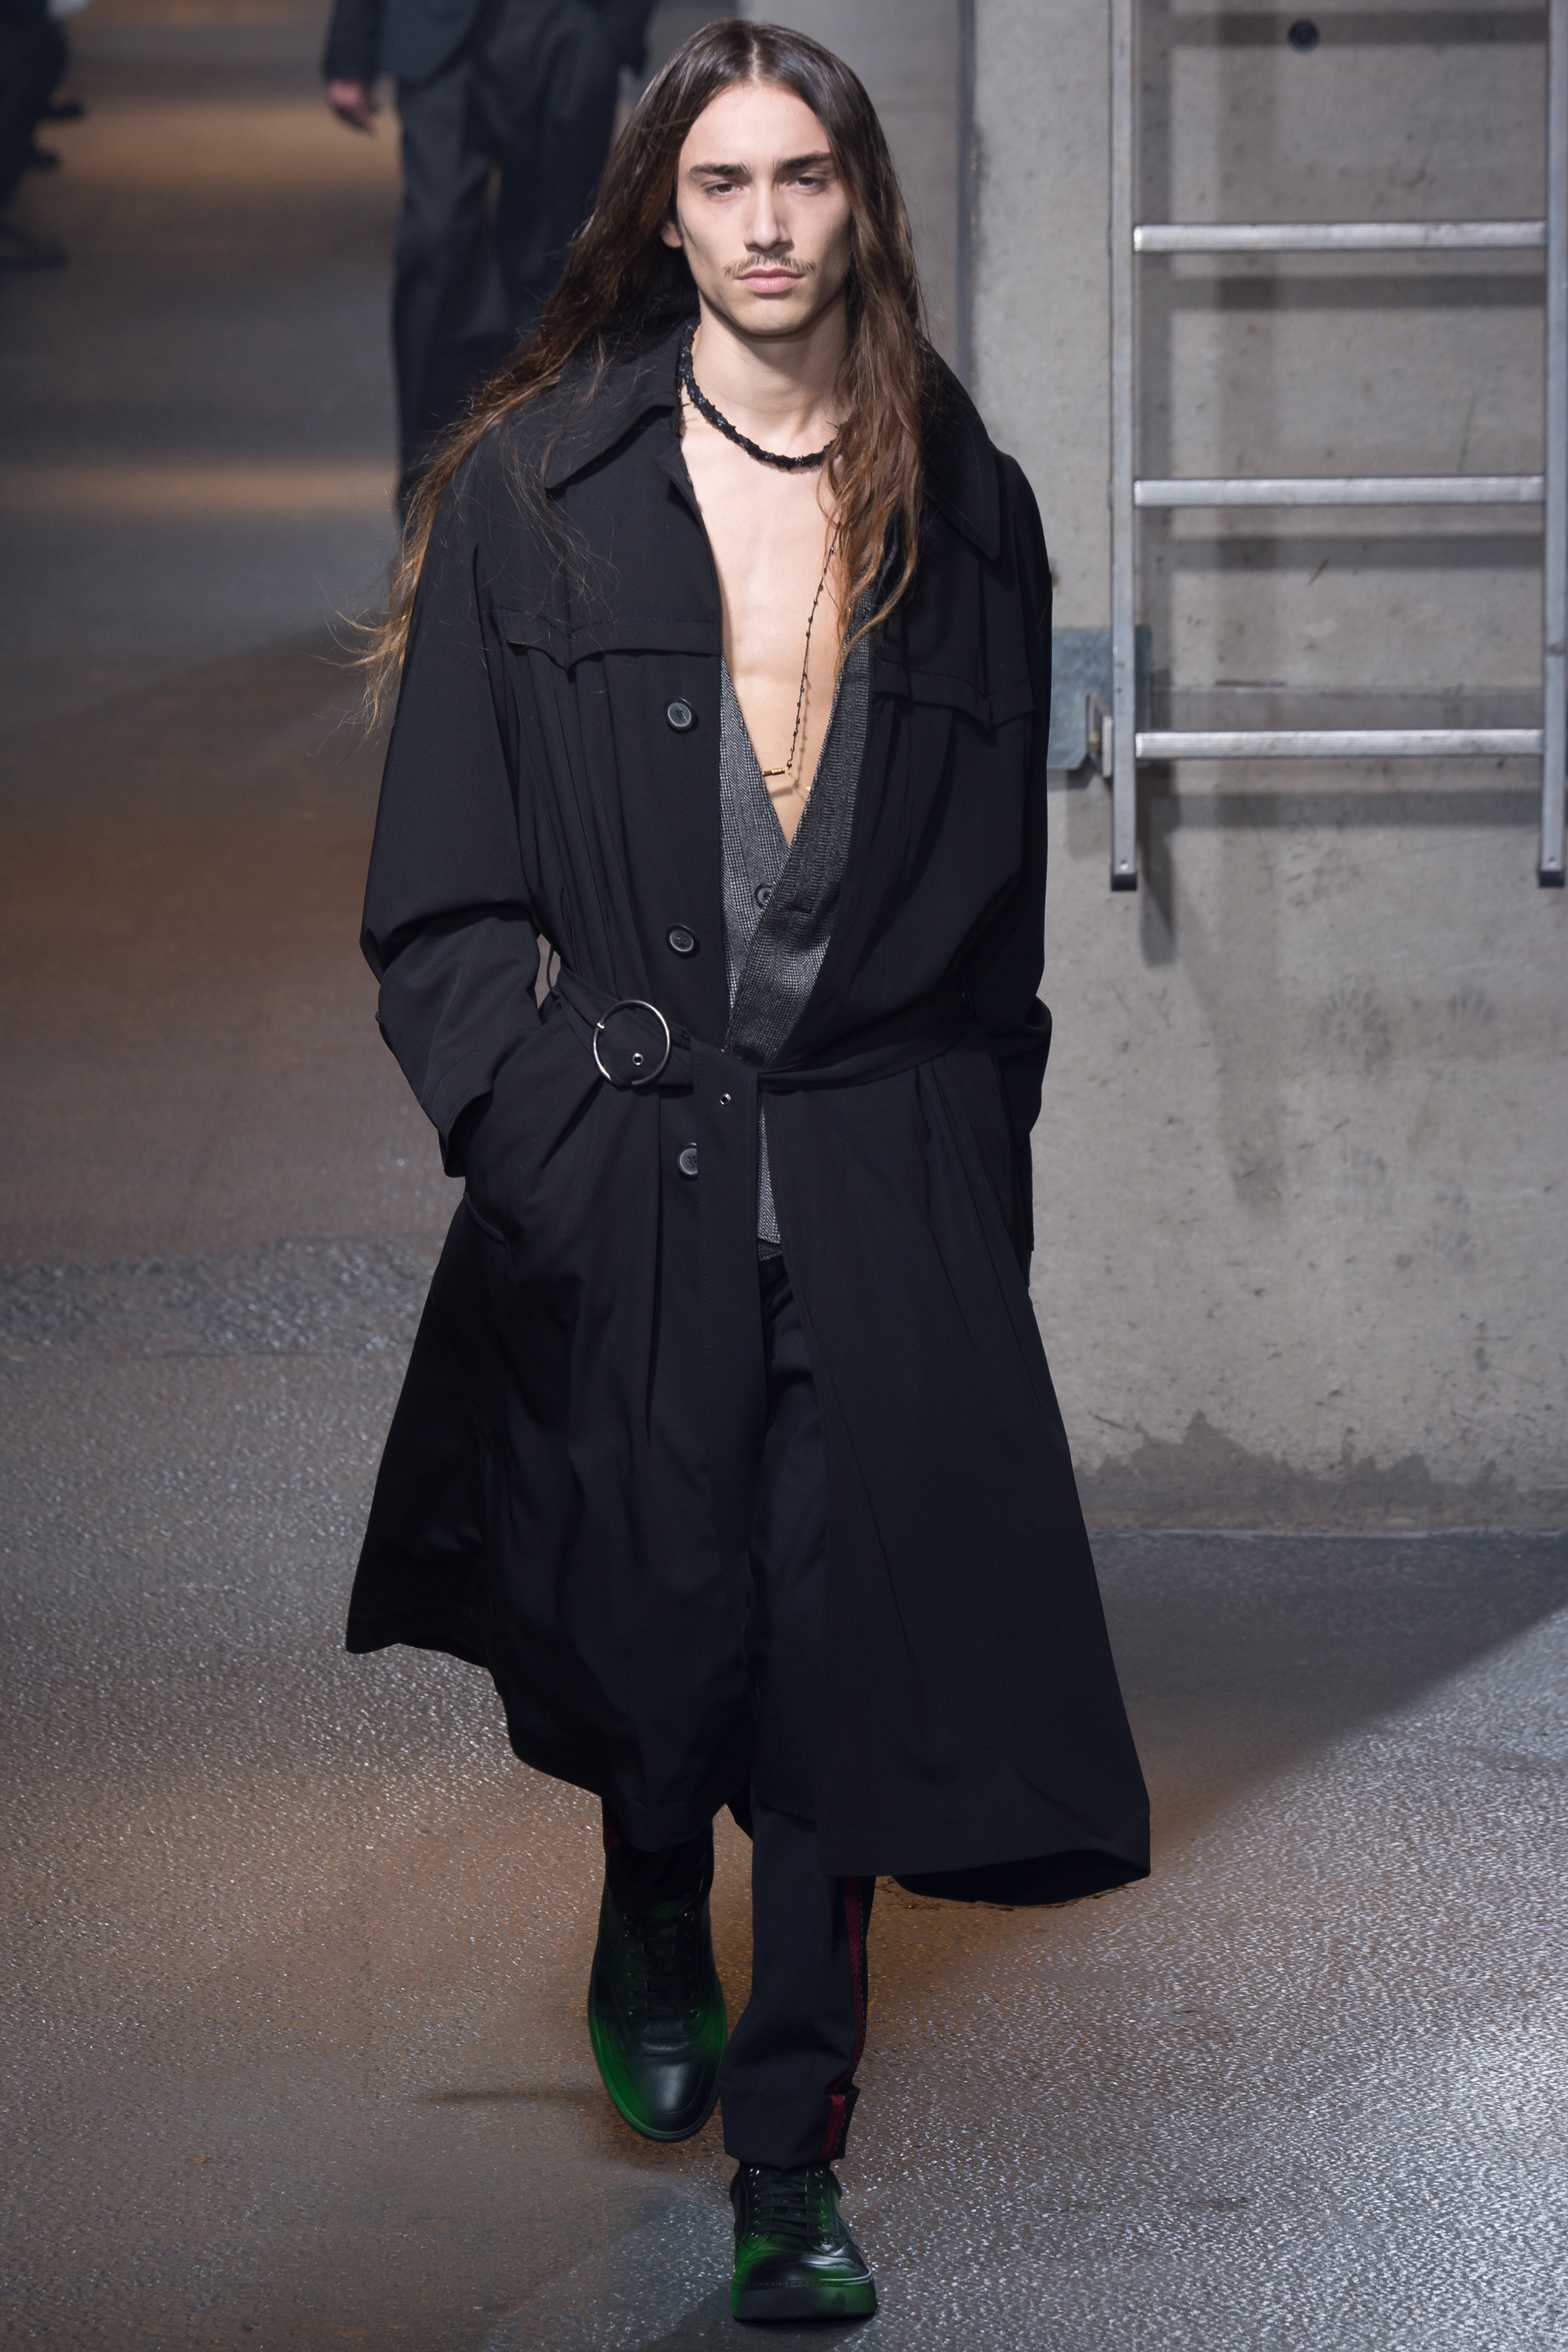 Lanvin wrapped up Paris Men's Fashion Week